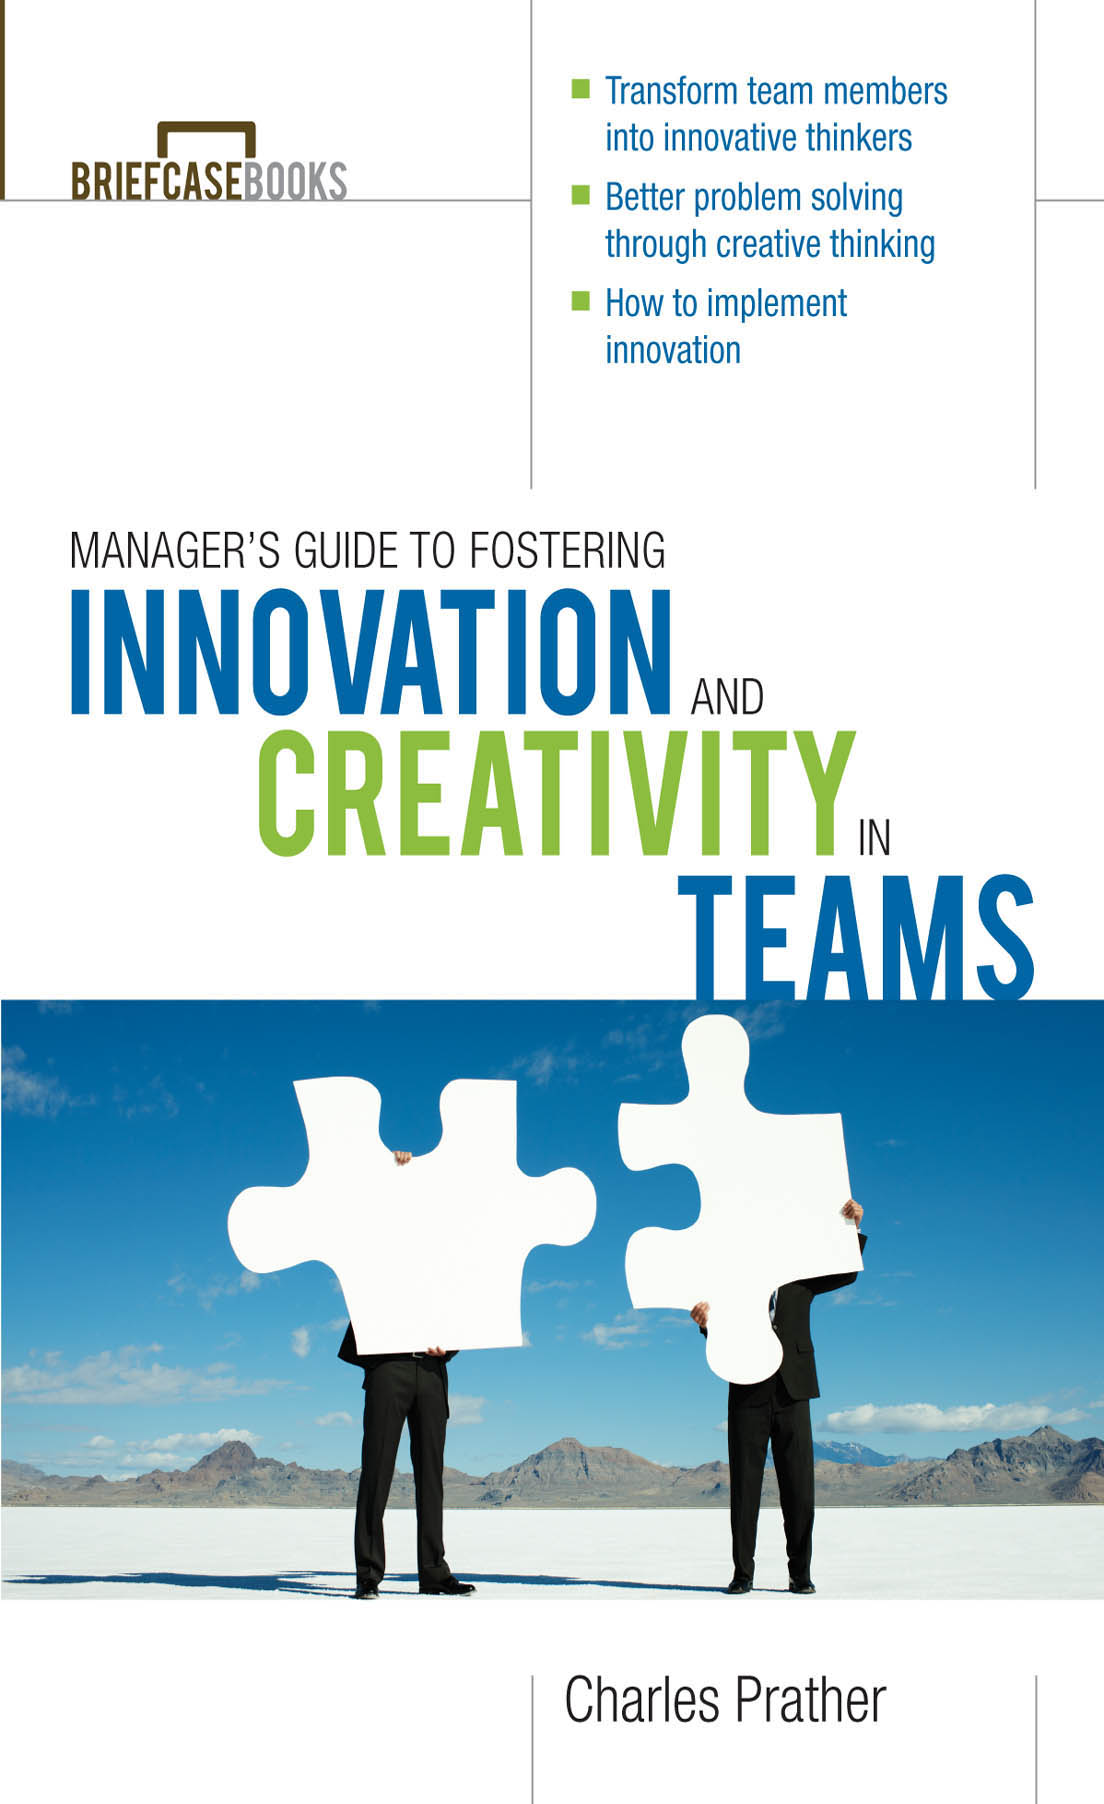 Download Ebook The Manager's Guide to Fostering Innovation and Creativity in Teams by Charles Prather Pdf